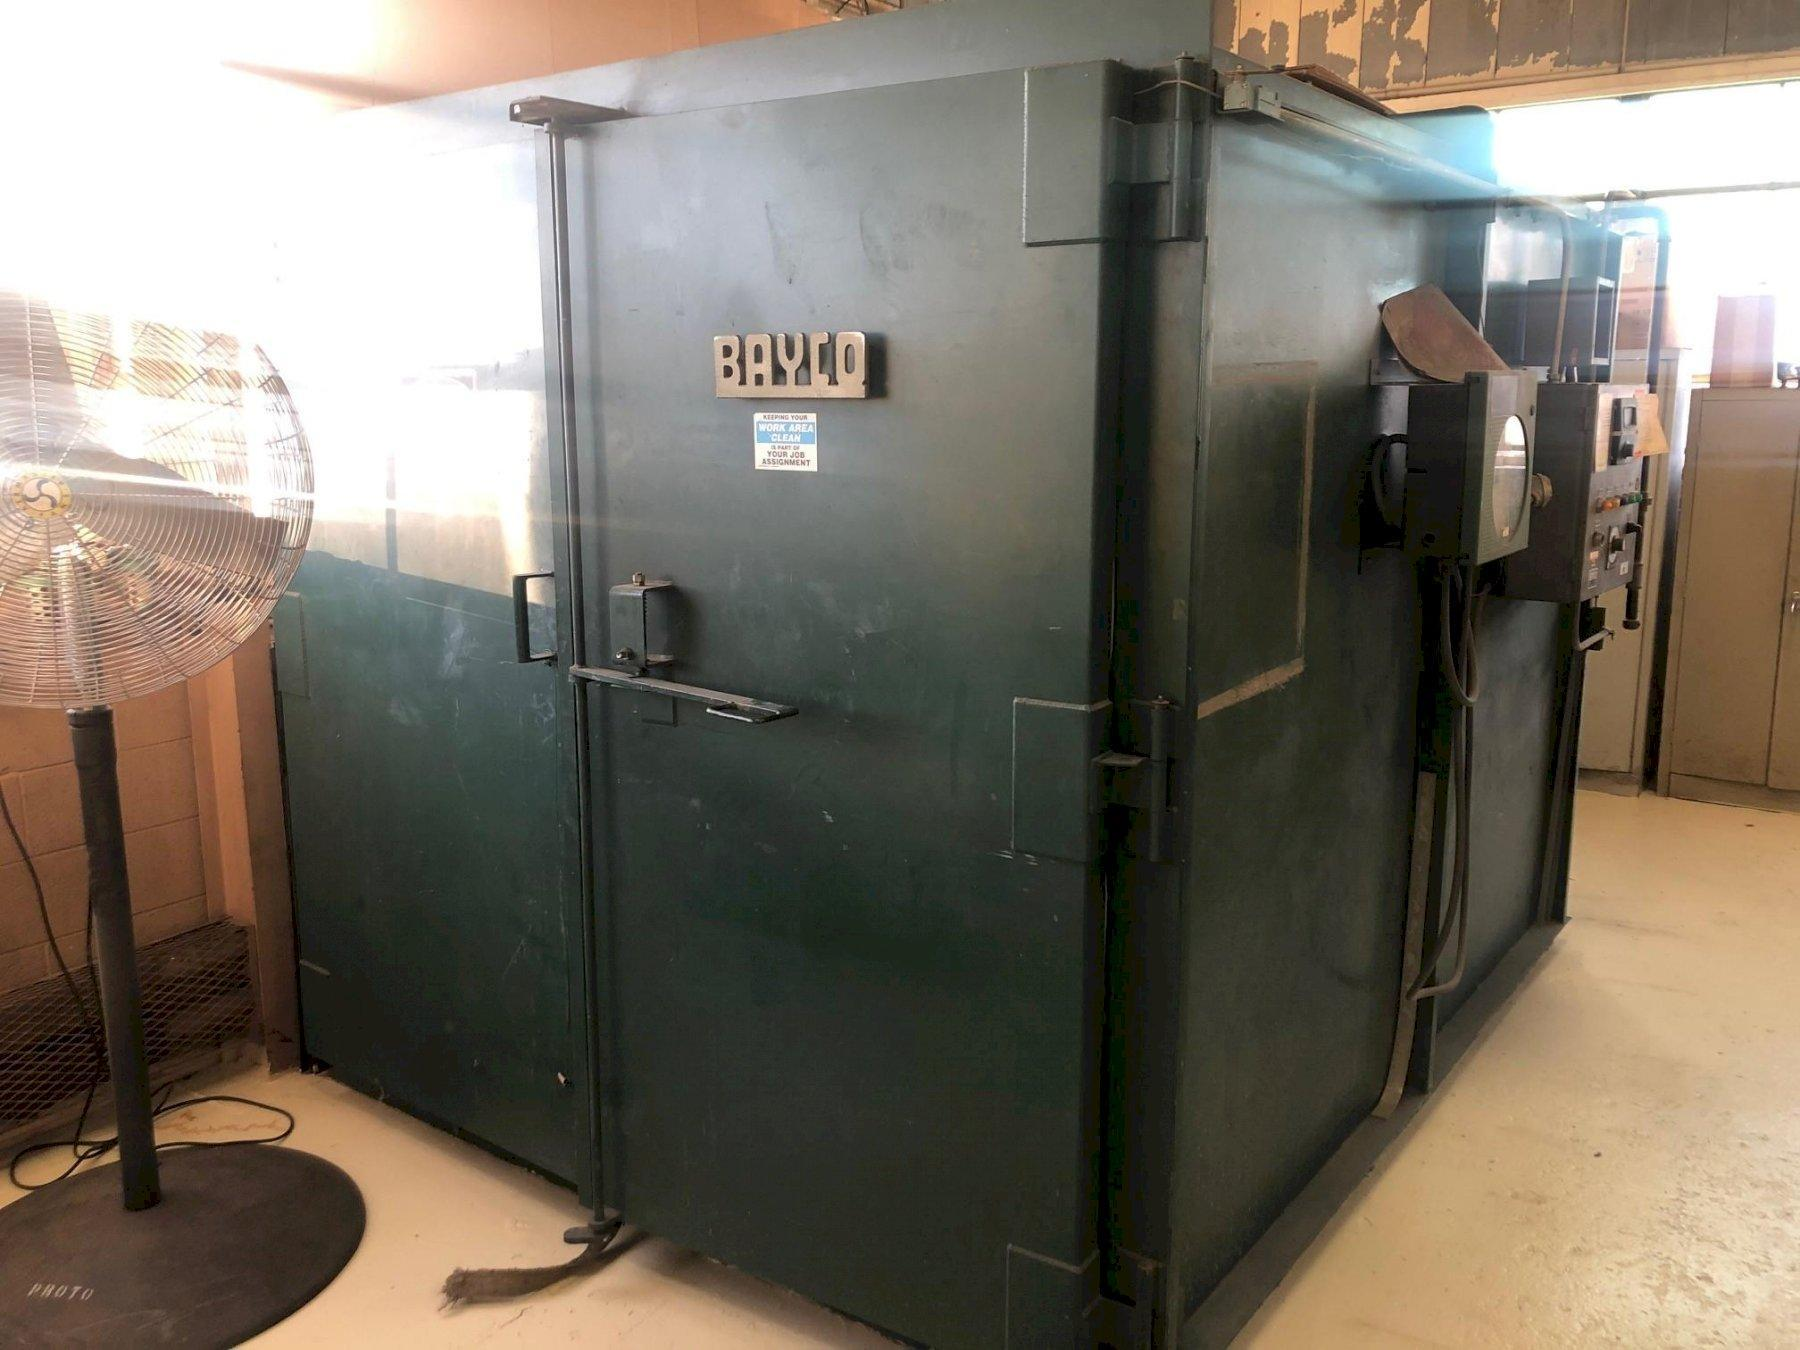 BAYCO WALK IN OVEN